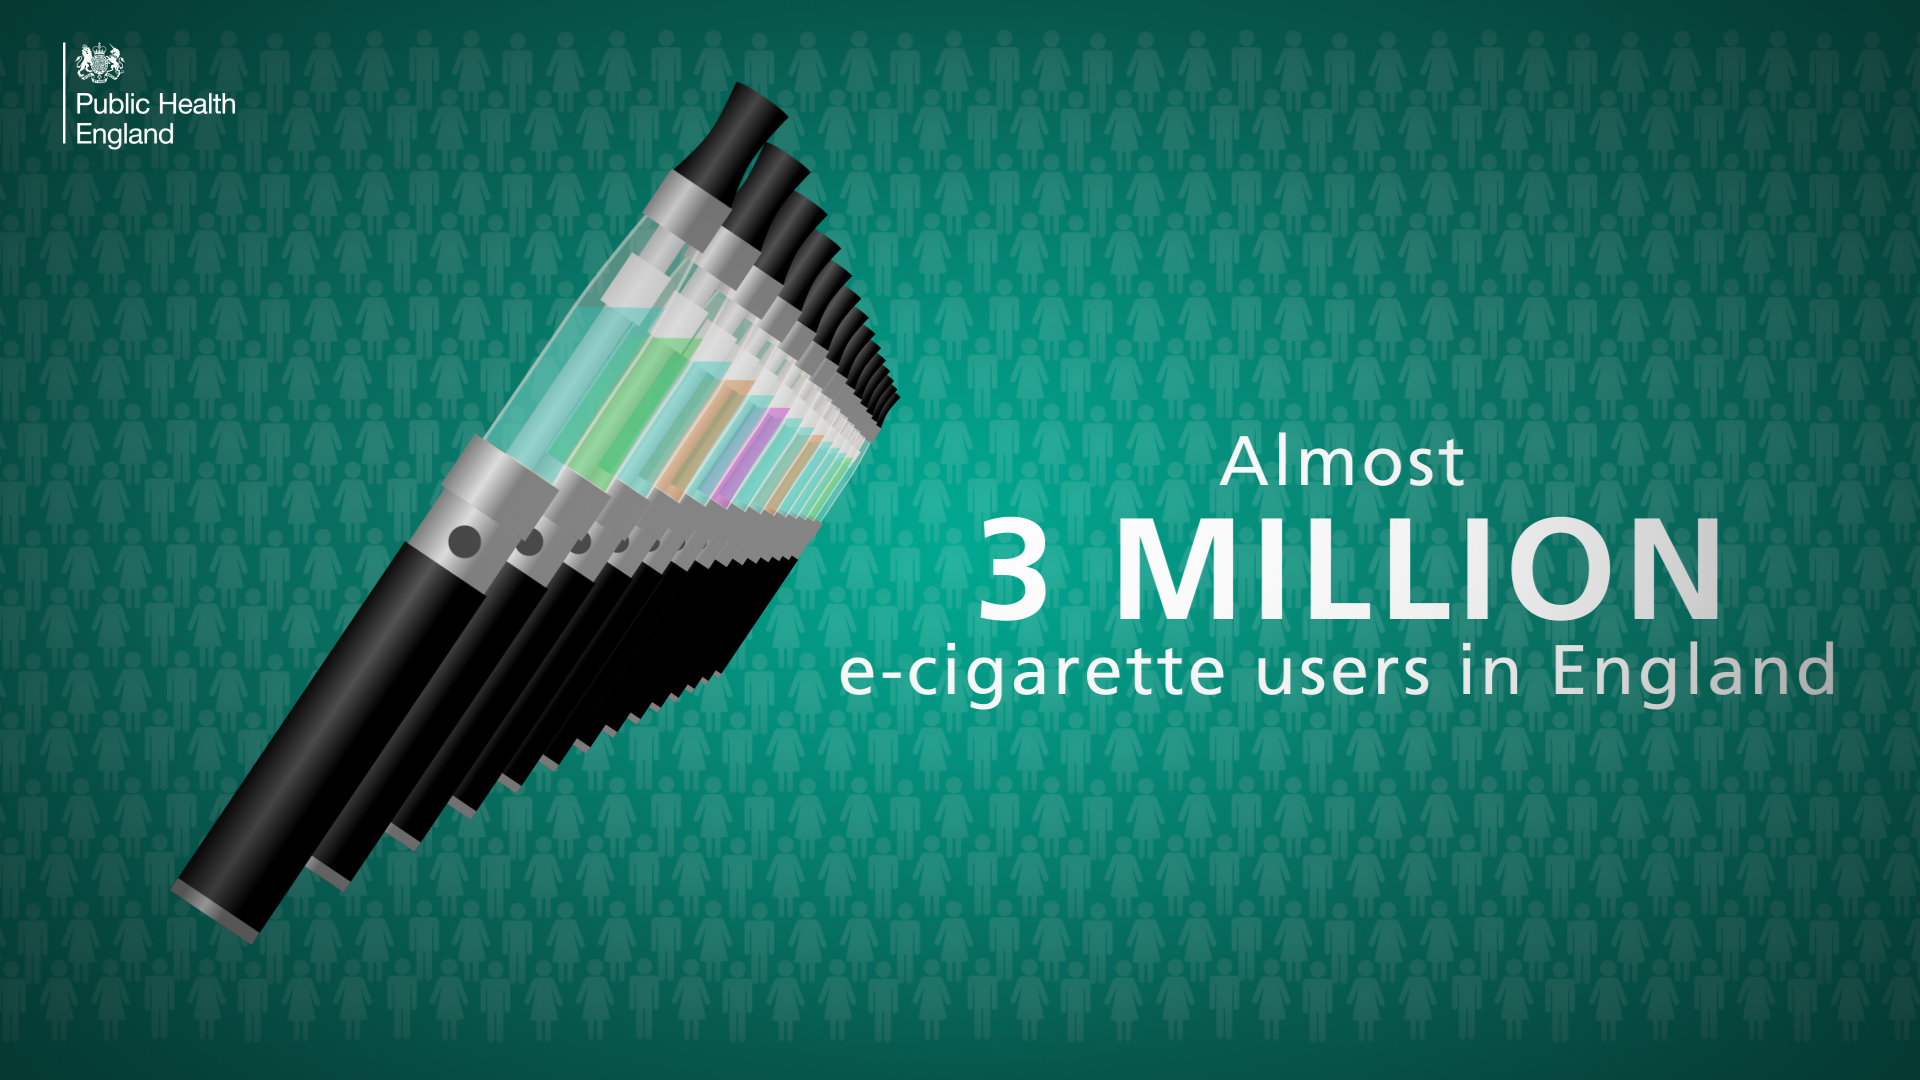 Clearing up some myths around e-cigarettes - Public health